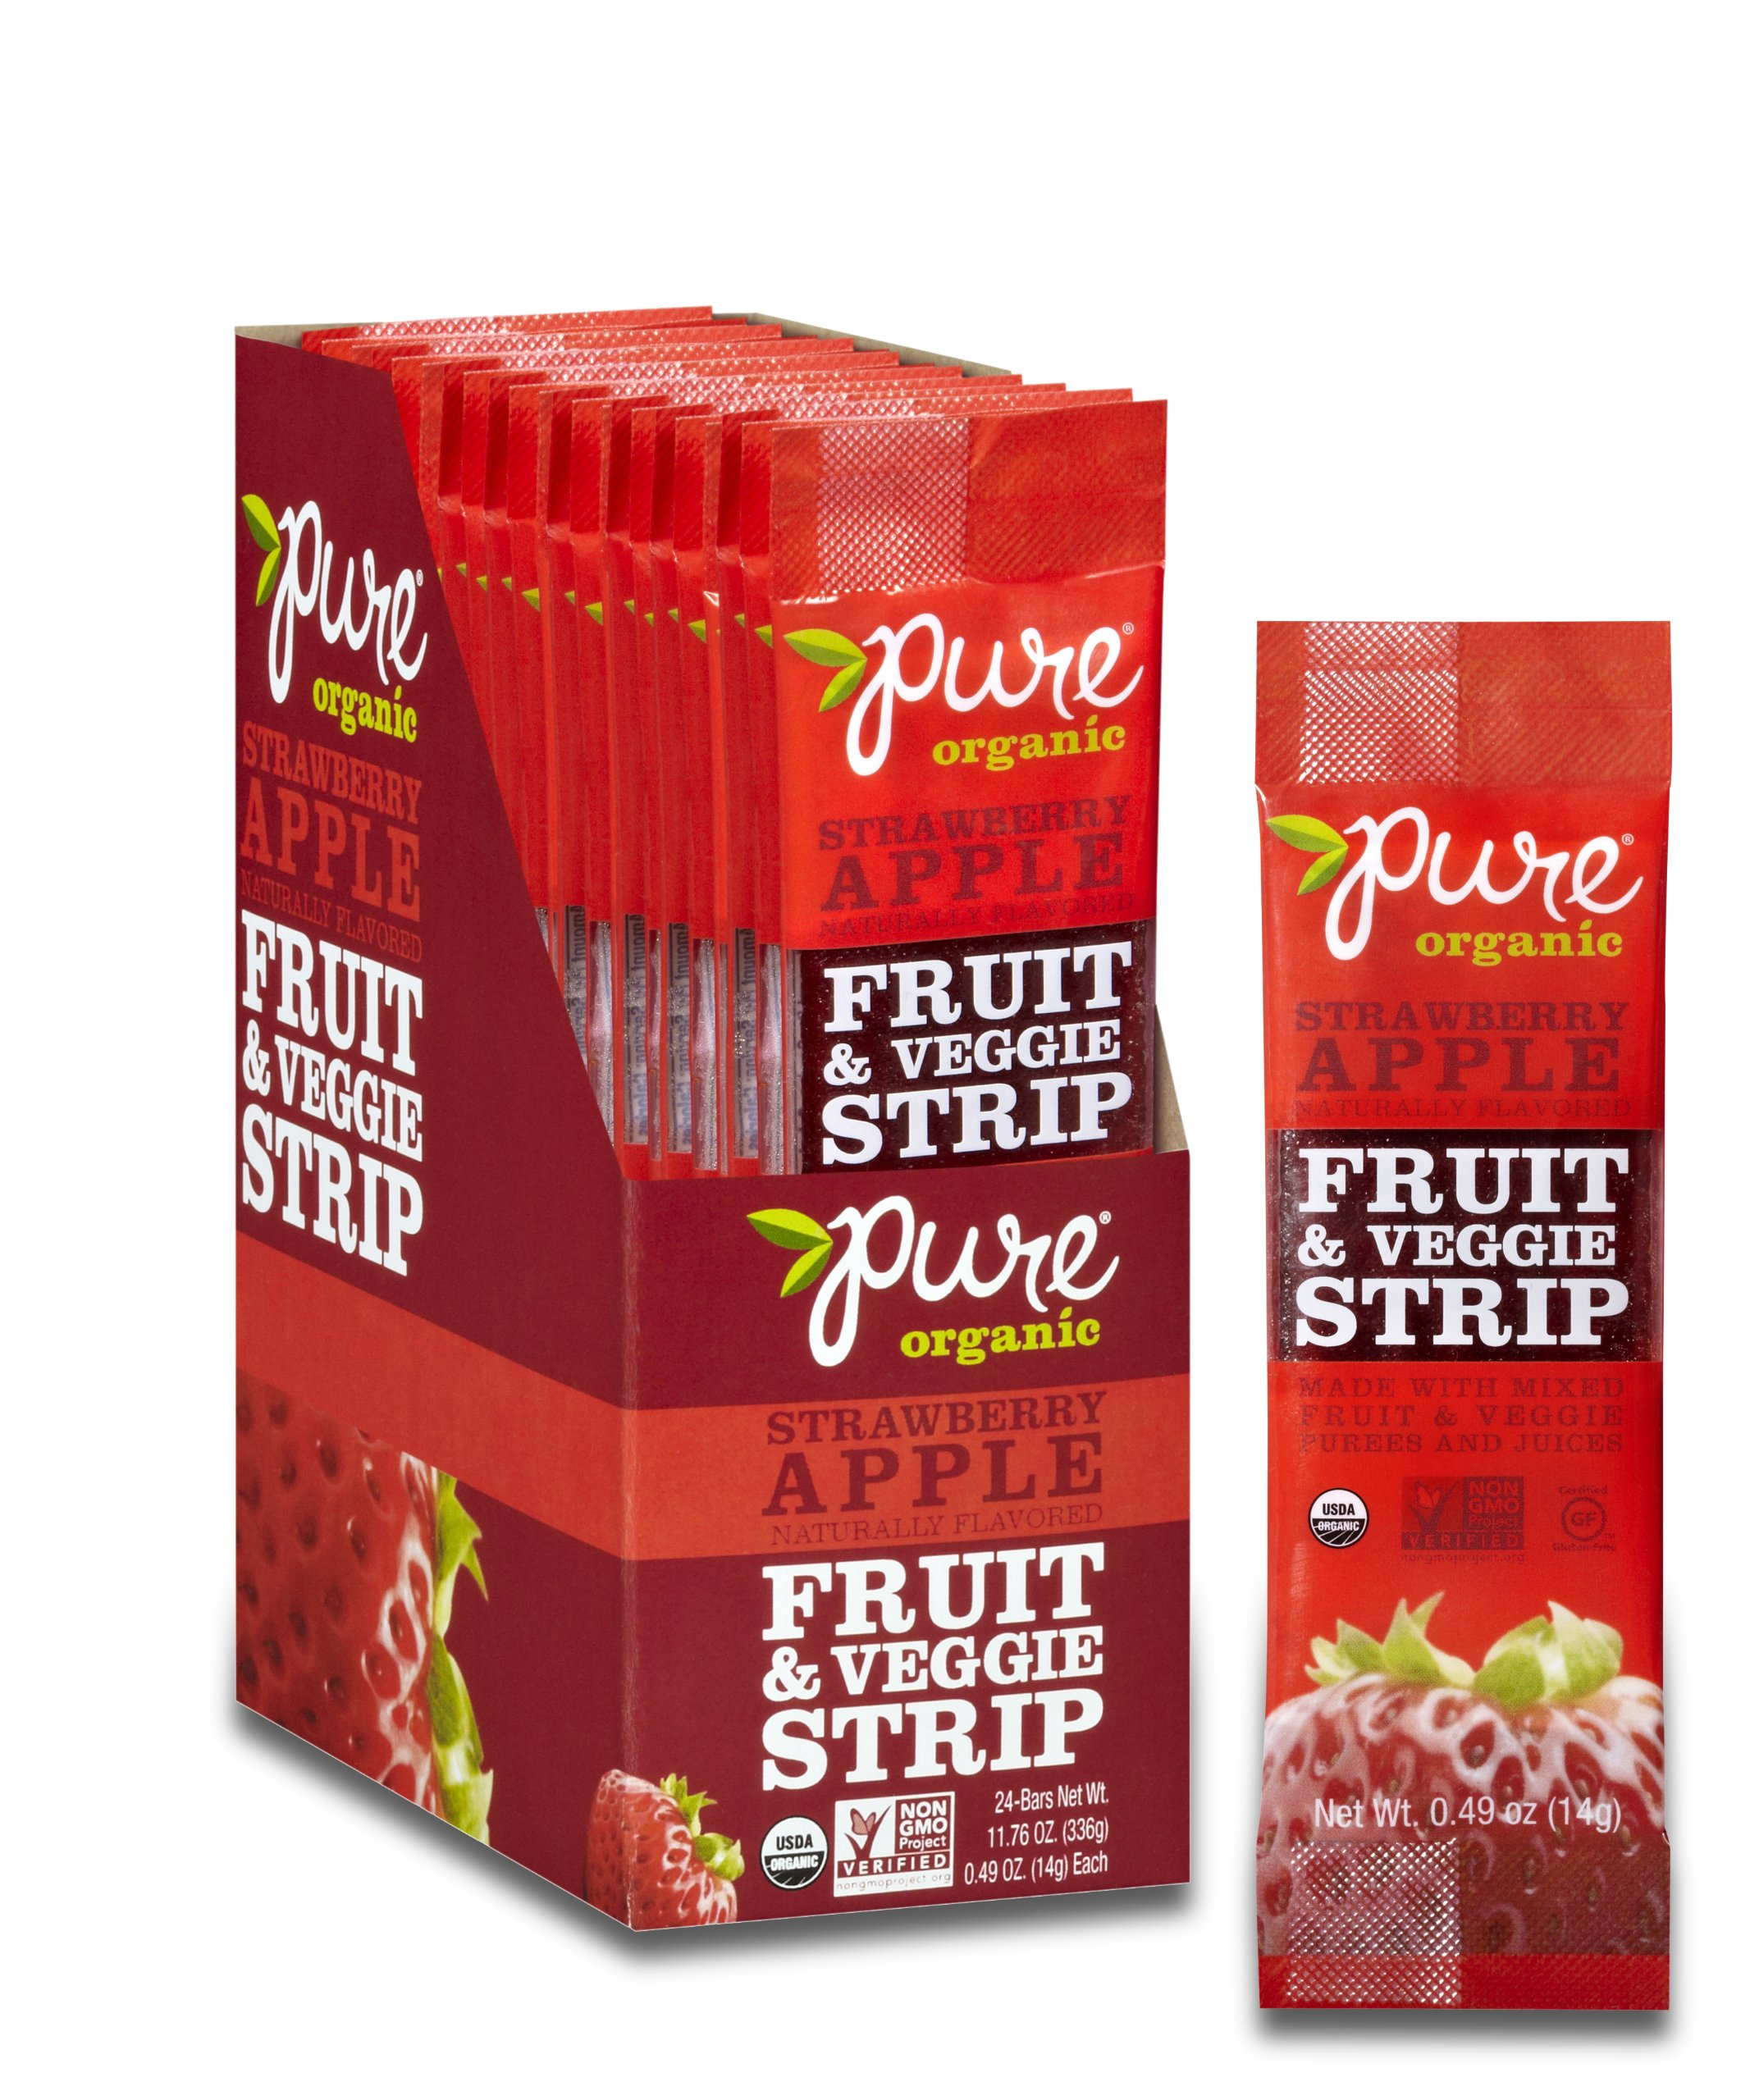 Pure Organic Strawberry Apple Fruit & Veggie Strip, Certified Organic, Gluten-Free, Non-GMO, Vegan, Kosher, Peanut Free, No Artificial Ingredients, Fruit Snack, 0.49 ounce (Pack of 24)